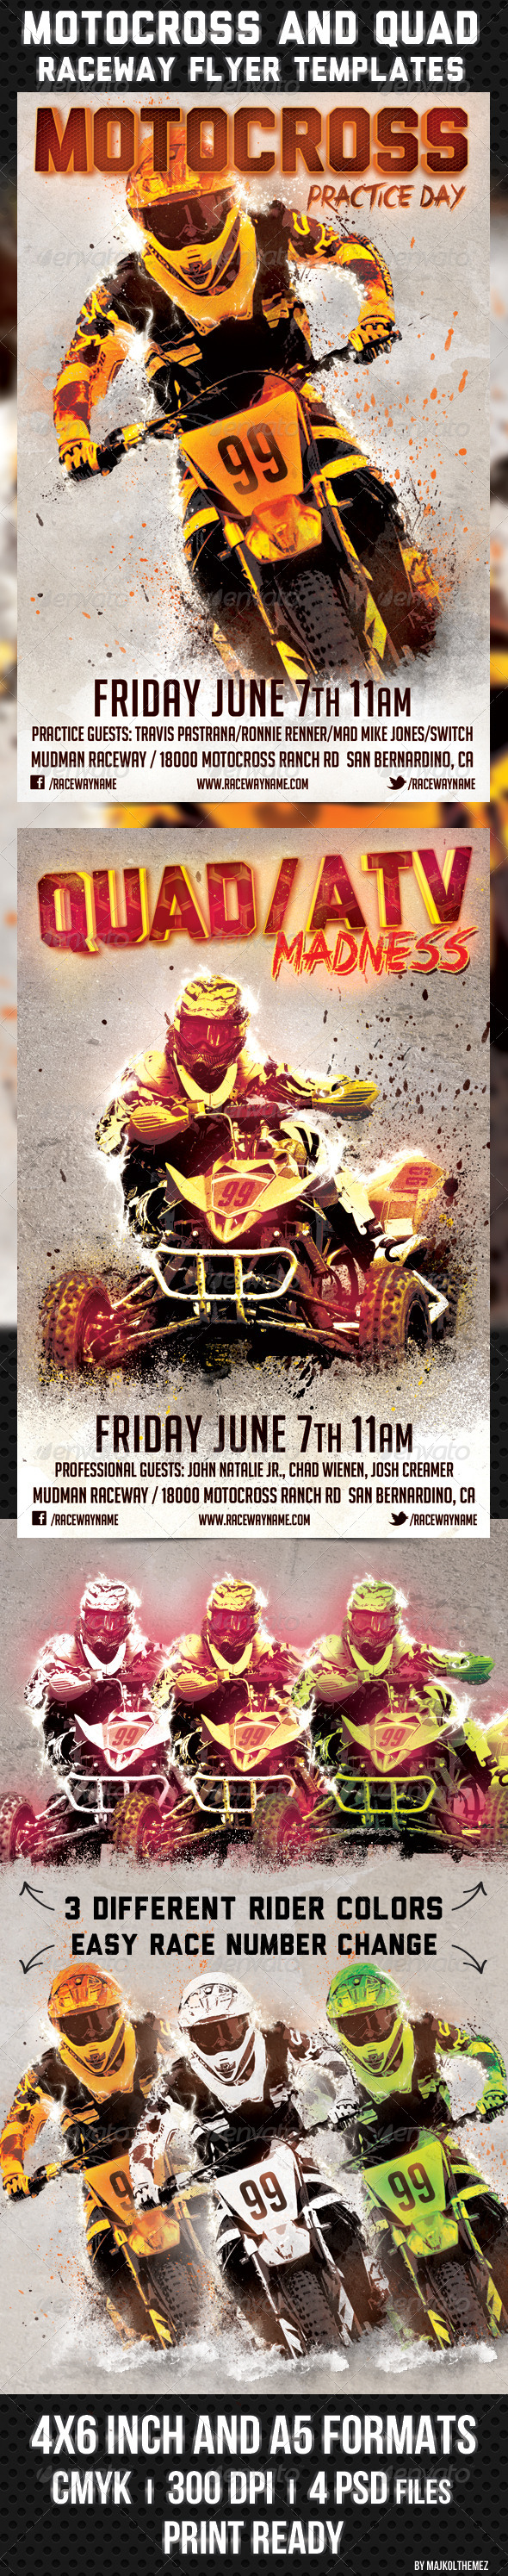 Motocross and Quad Raceway Flyer Template - Sports Events